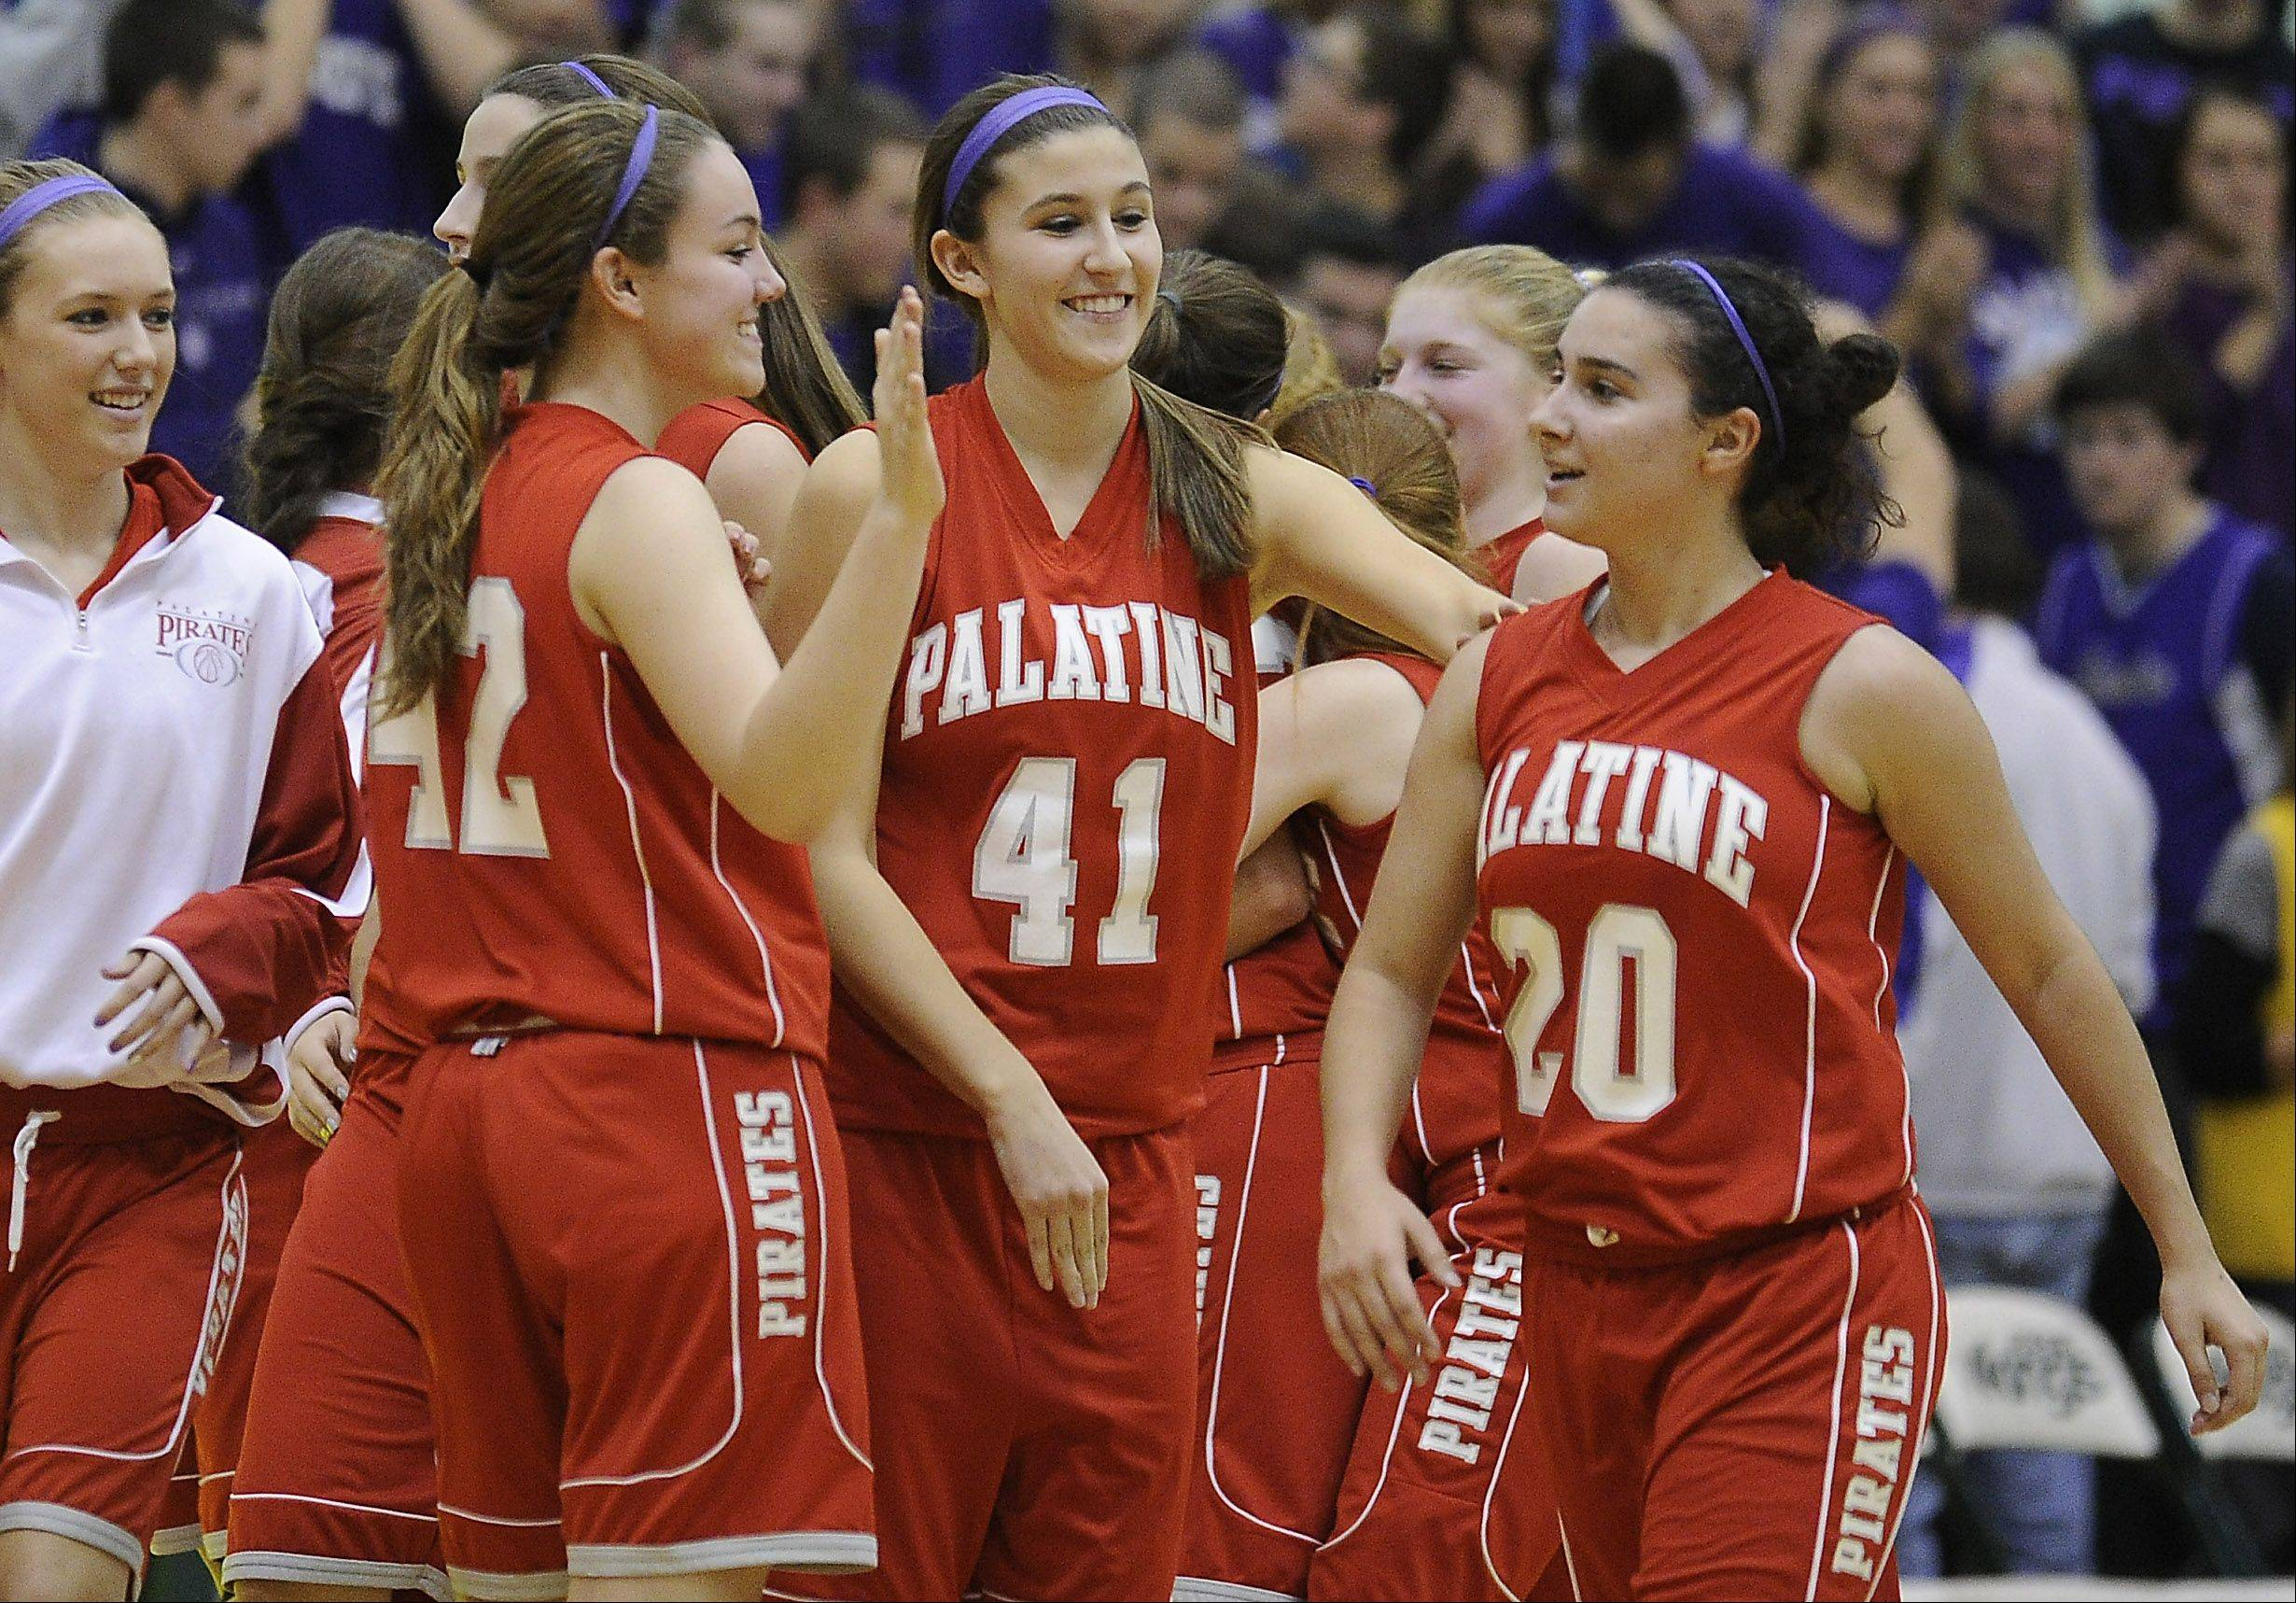 Palatine�s Carissa Moulton, Marissa Macini Nia Pappas celebrate their victory over Fremd.